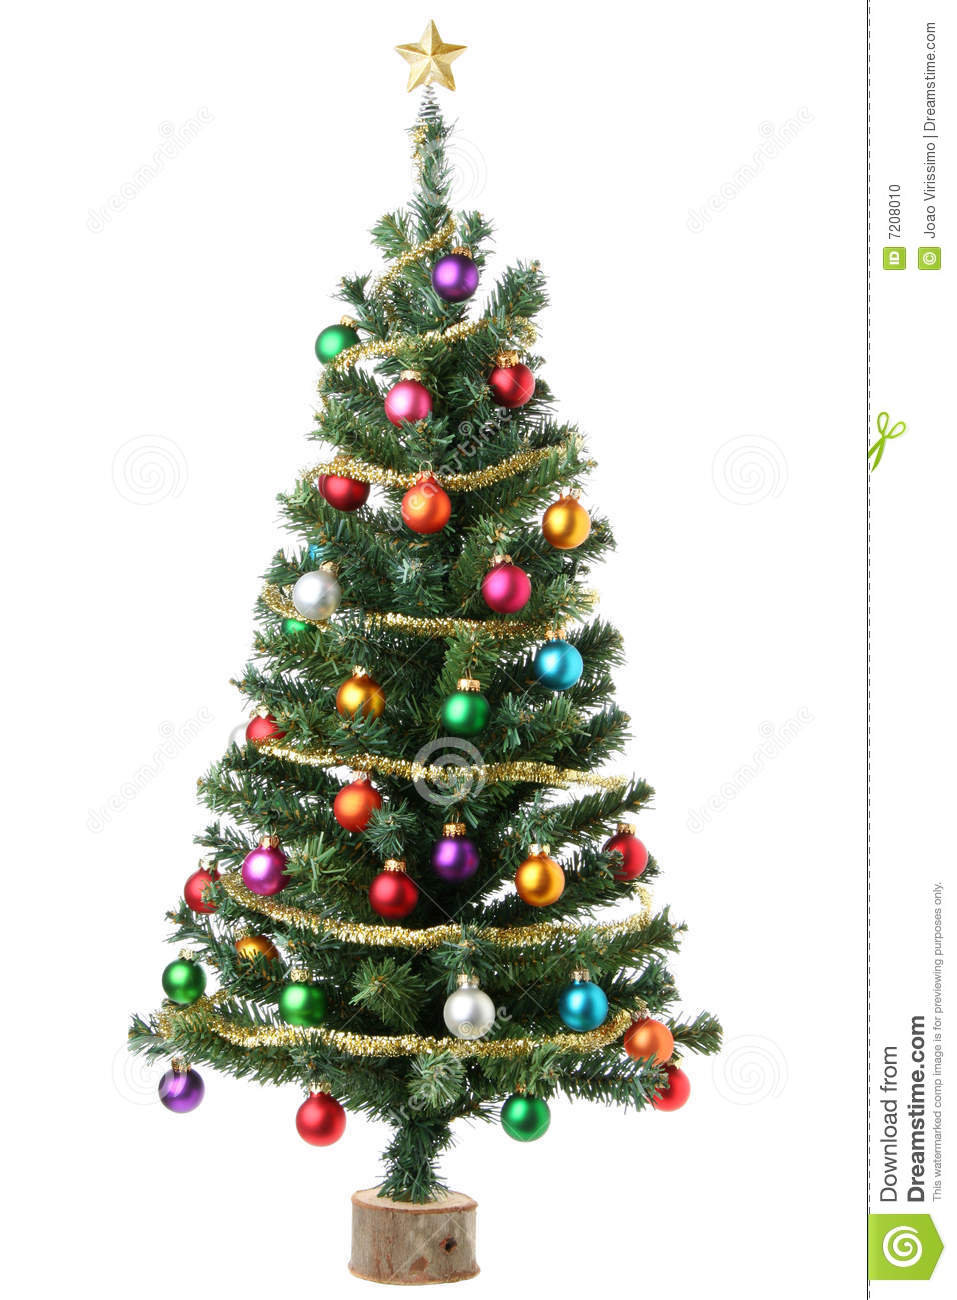 christmas tree stock photo image 7208010